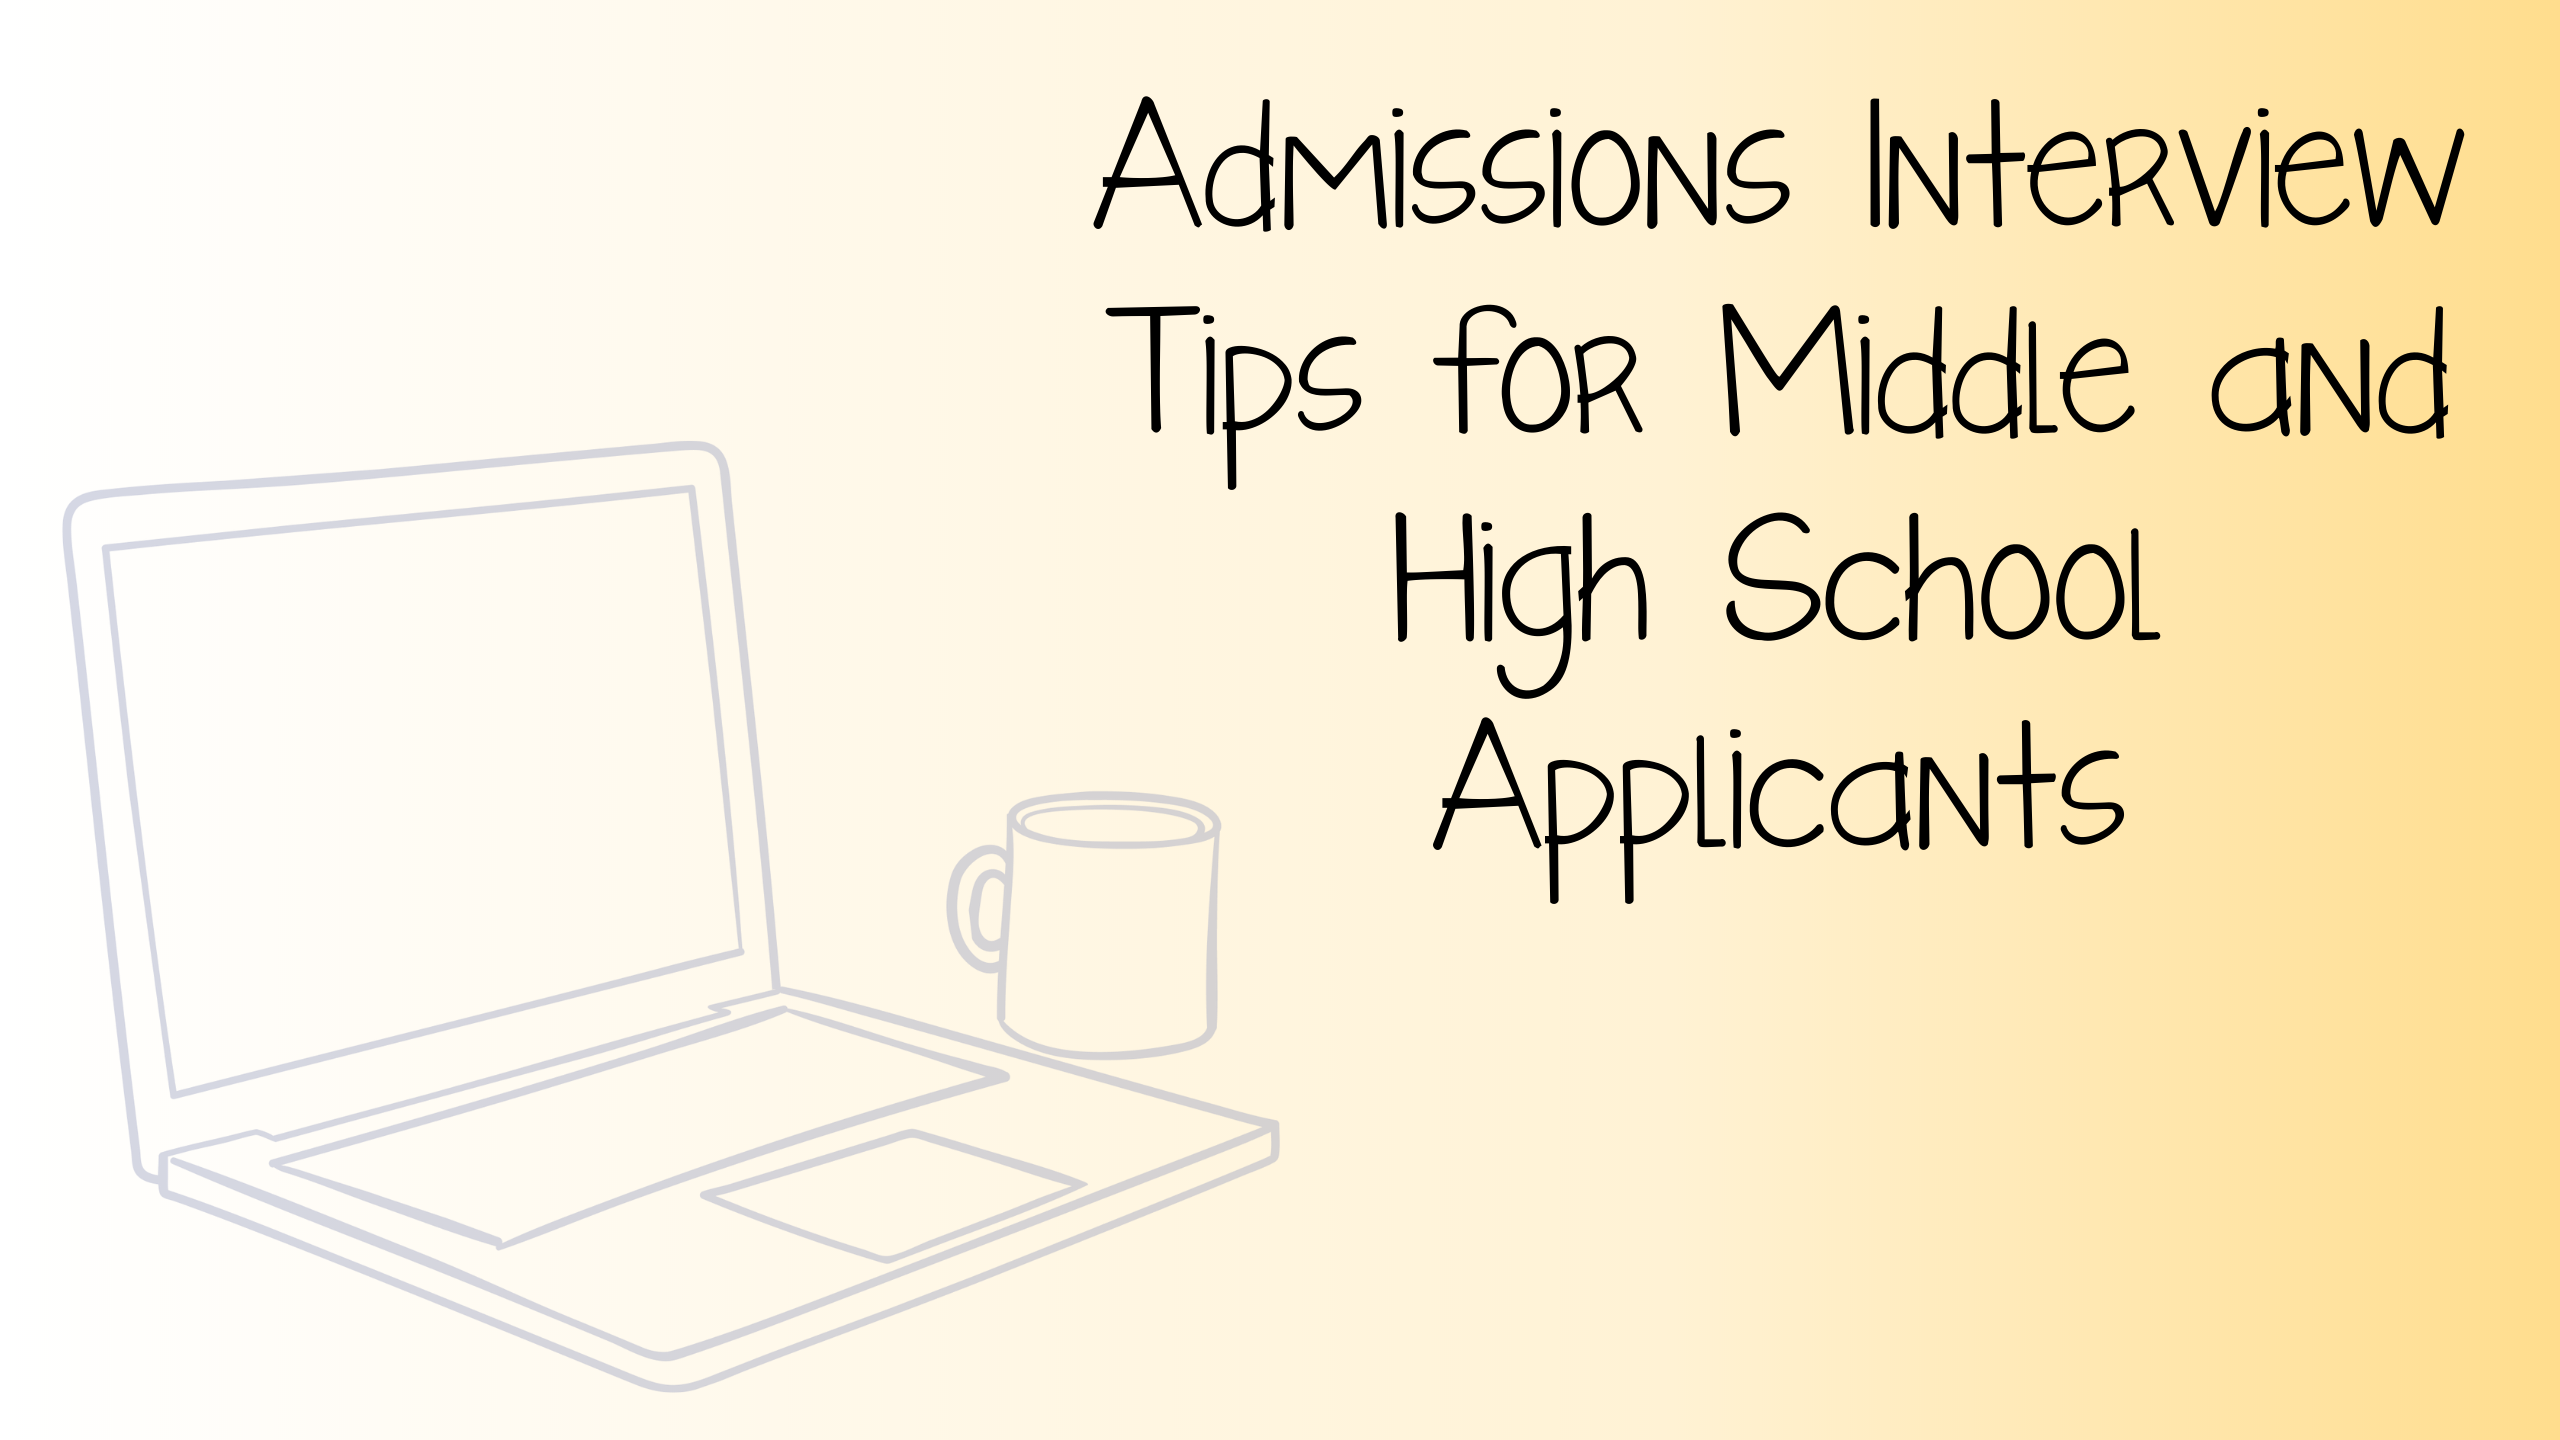 Admissions Interview Tips for Middle and High School Applicants